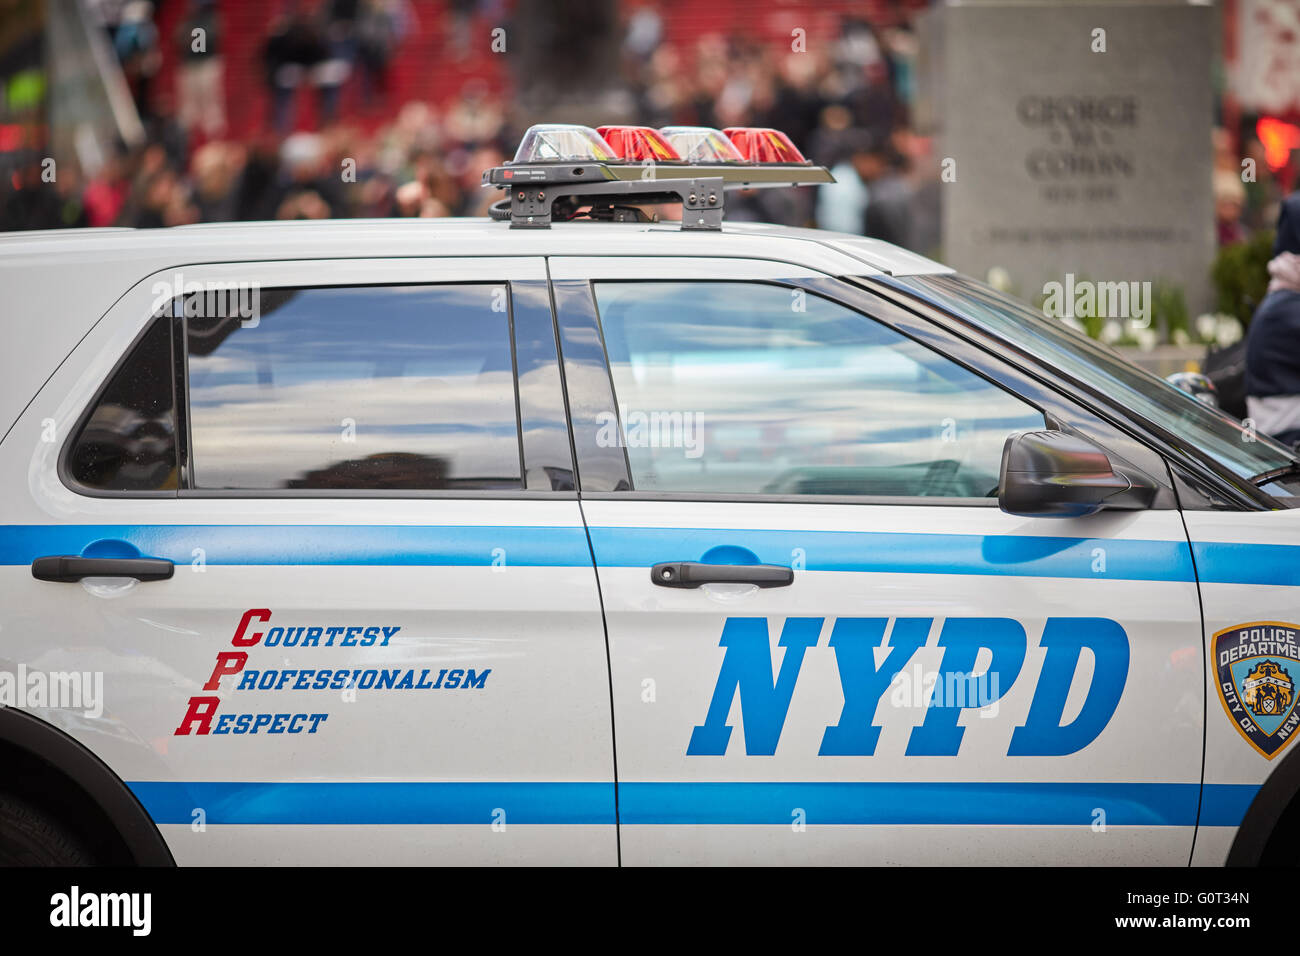 New York times Square broadway  NYPD courteous Professionalism Respect car suv close up blue white Police  officer - Stock Image